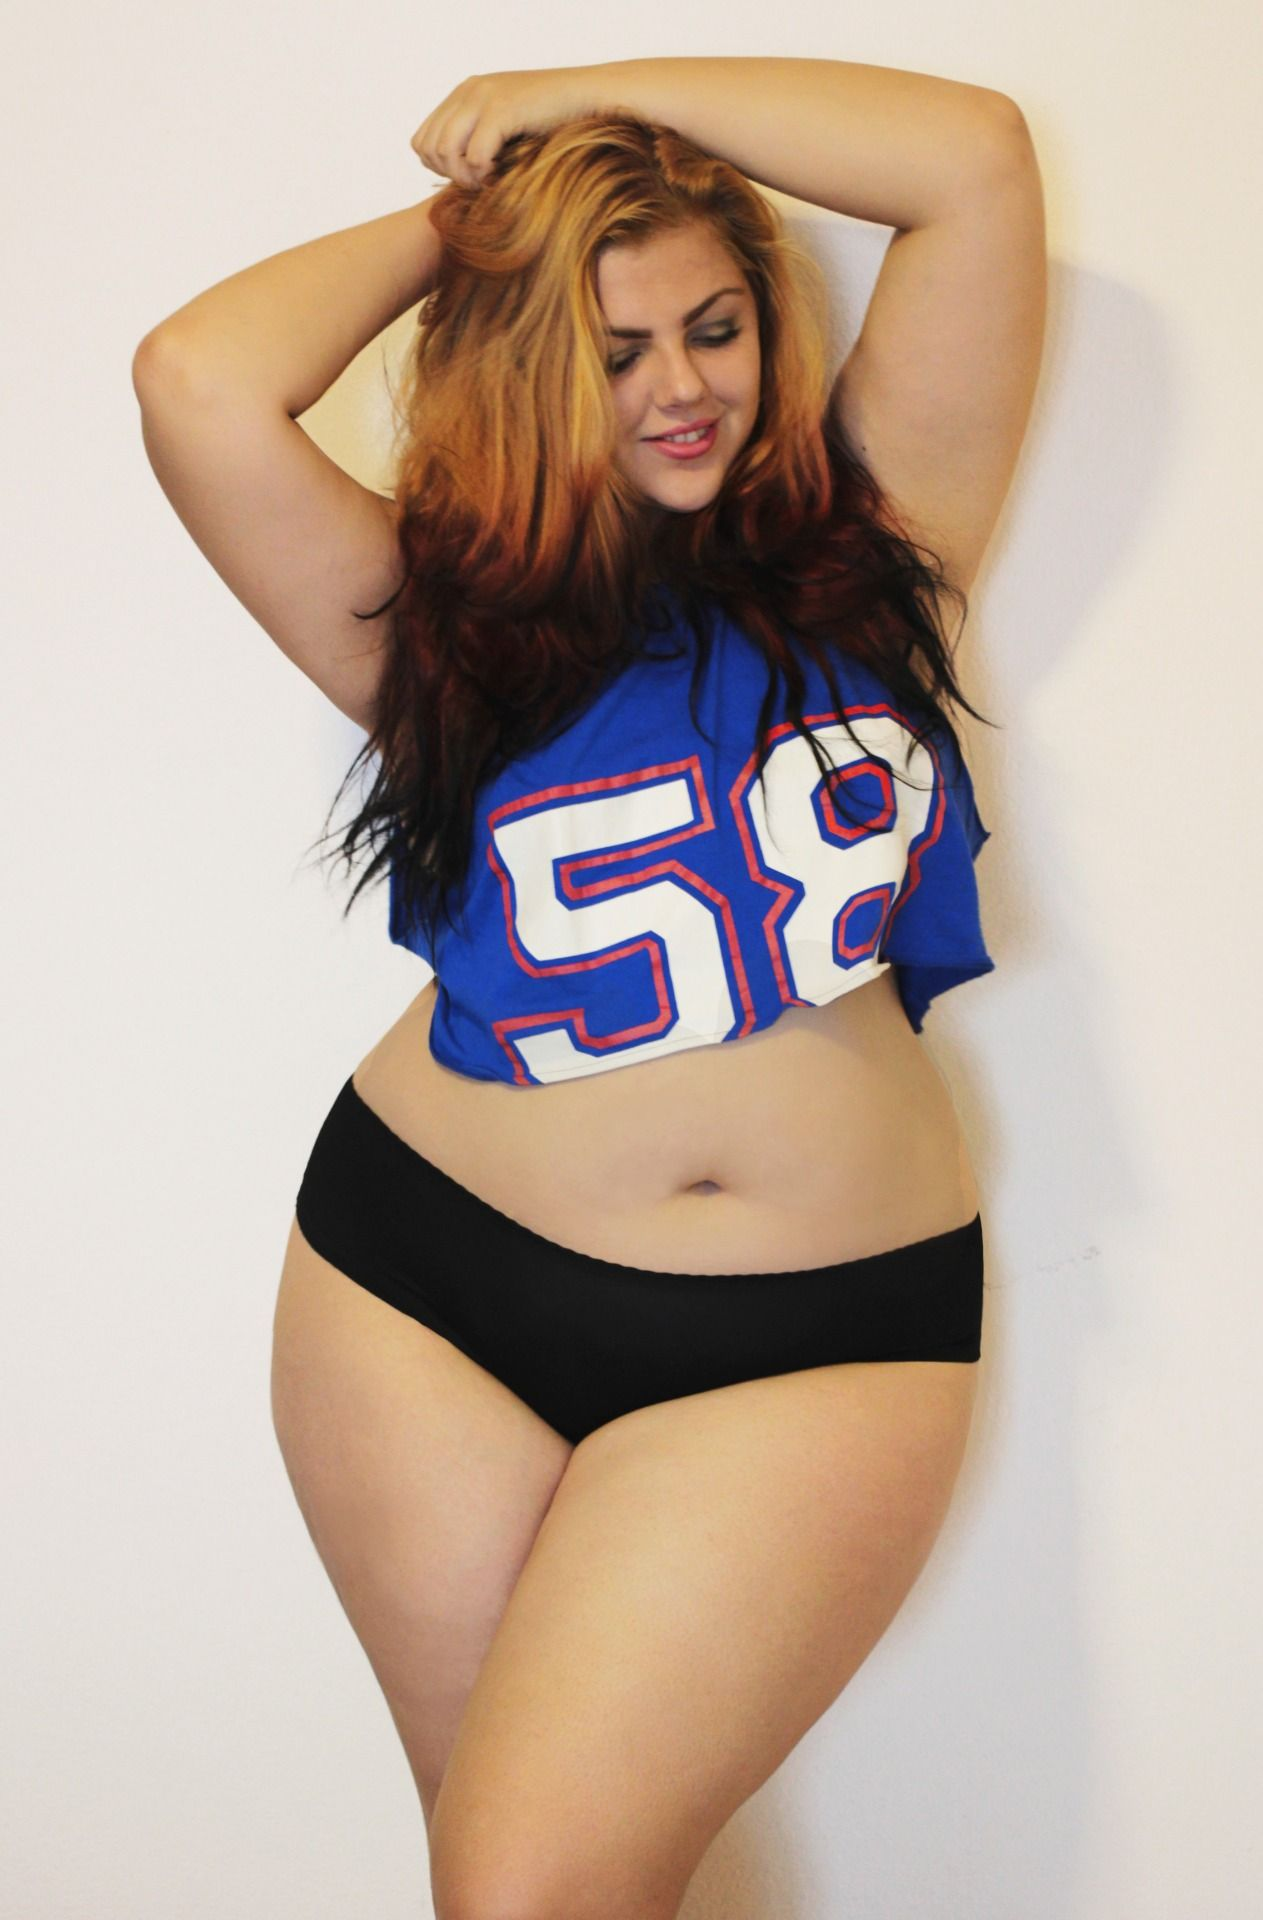 Chubby girls are sexy